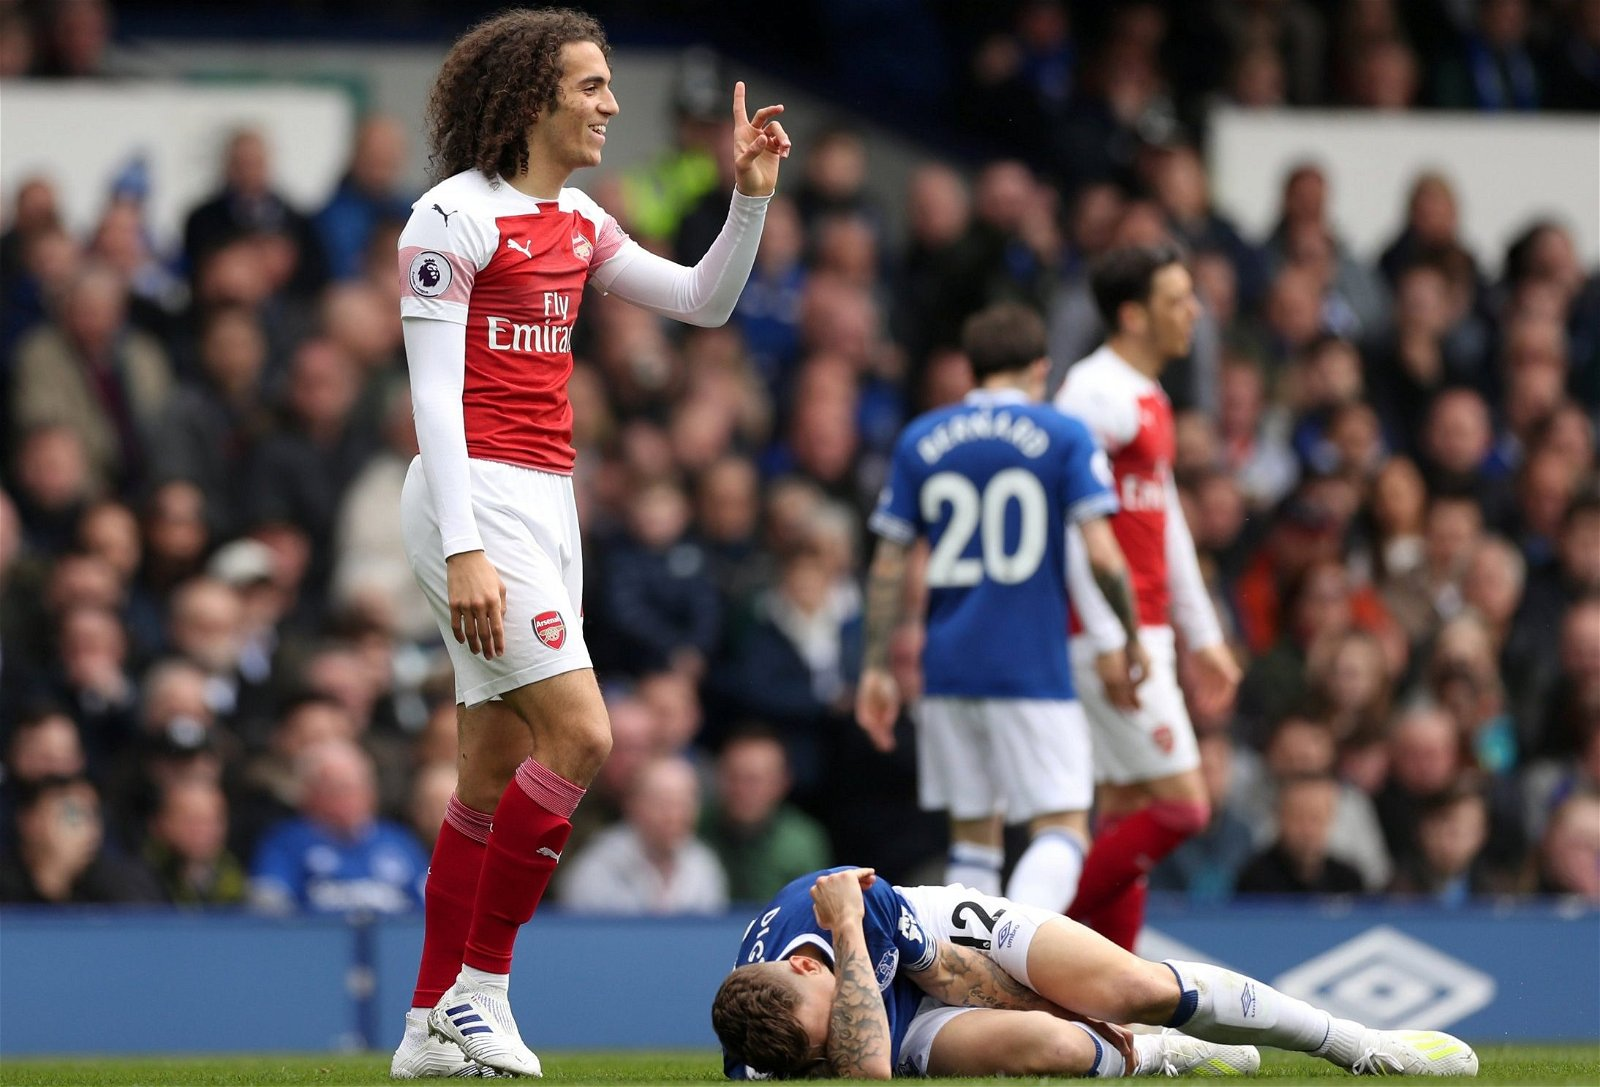 Arsenal midfielder Matteo Guendouzi reacts after being booked vs Everton